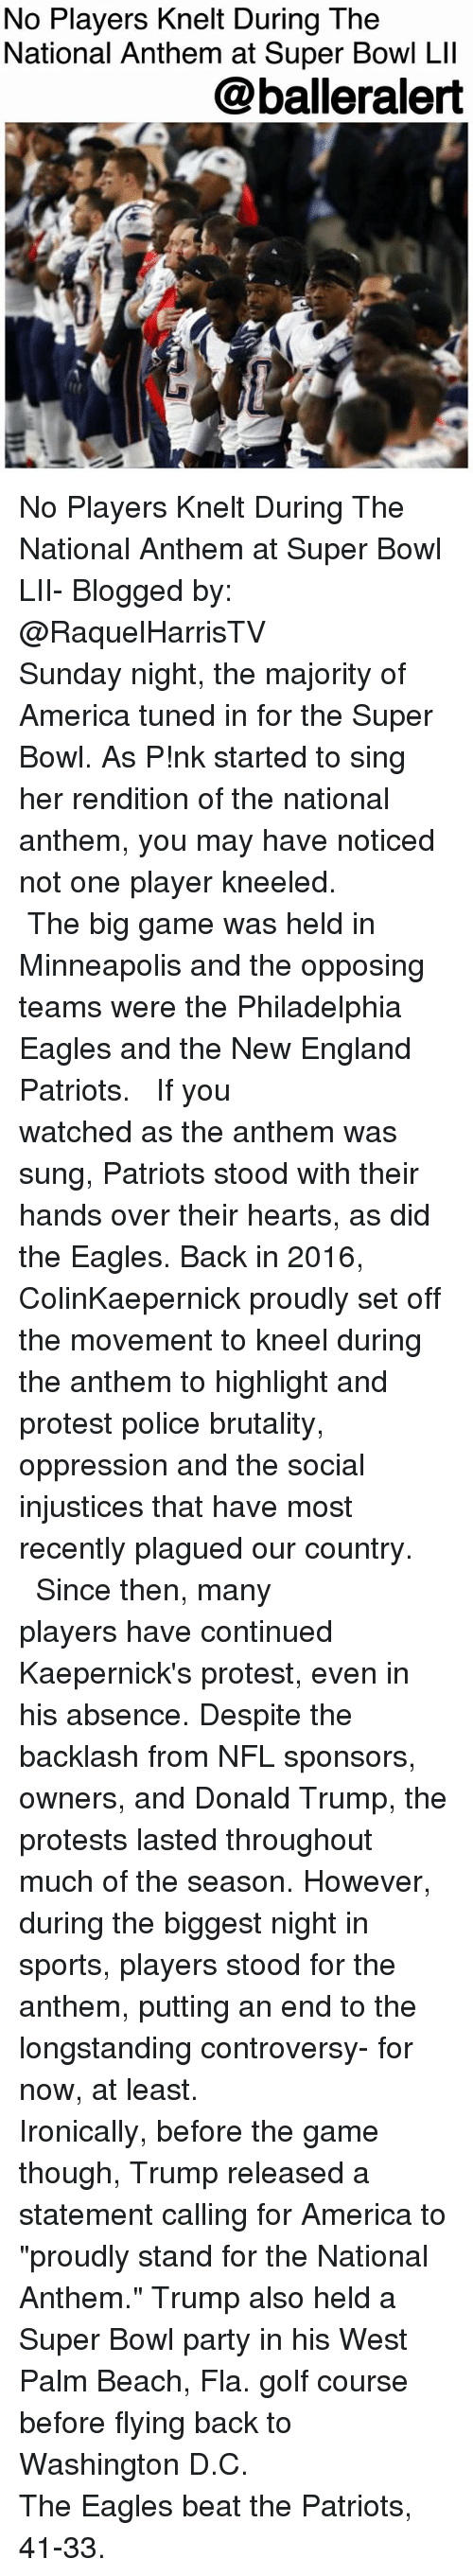 "Golf Course: No Players Knelt During The  National Anthem at Super Bowl Lll  @balleralert No Players Knelt During The National Anthem at Super Bowl LII- Blogged by: @RaquelHarrisTV ⠀⠀⠀⠀⠀⠀⠀ ⠀⠀⠀⠀⠀⠀⠀ Sunday night, the majority of America tuned in for the Super Bowl. As P!nk started to sing her rendition of the national anthem, you may have noticed not one player kneeled. ⠀⠀⠀⠀⠀⠀⠀⠀⠀ ⠀⠀⠀⠀⠀⠀⠀⠀⠀ The big game was held in Minneapolis and the opposing teams were the Philadelphia Eagles and the New England Patriots. ⠀⠀⠀⠀⠀⠀⠀⠀⠀ ⠀⠀⠀⠀⠀⠀⠀⠀⠀ If you watched as the anthem was sung, Patriots stood with their hands over their hearts, as did the Eagles. Back in 2016, ColinKaepernick proudly set off the movement to kneel during the anthem to highlight and protest police brutality, oppression and the social injustices that have most recently plagued our country. ⠀⠀⠀⠀⠀⠀⠀⠀⠀ ⠀⠀⠀⠀⠀⠀⠀⠀⠀ Since then, many players have continued Kaepernick's protest, even in his absence. Despite the backlash from NFL sponsors, owners, and Donald Trump, the protests lasted throughout much of the season. However, during the biggest night in sports, players stood for the anthem, putting an end to the longstanding controversy- for now, at least. ⠀⠀⠀⠀⠀⠀⠀ ⠀⠀⠀⠀⠀⠀⠀ Ironically, before the game though, Trump released a statement calling for America to ""proudly stand for the National Anthem."" Trump also held a Super Bowl party in his West Palm Beach, Fla. golf course before flying back to Washington D.C. ⠀⠀⠀⠀⠀⠀⠀⠀⠀ ⠀⠀⠀⠀⠀⠀⠀⠀⠀ The Eagles beat the Patriots, 41-33."